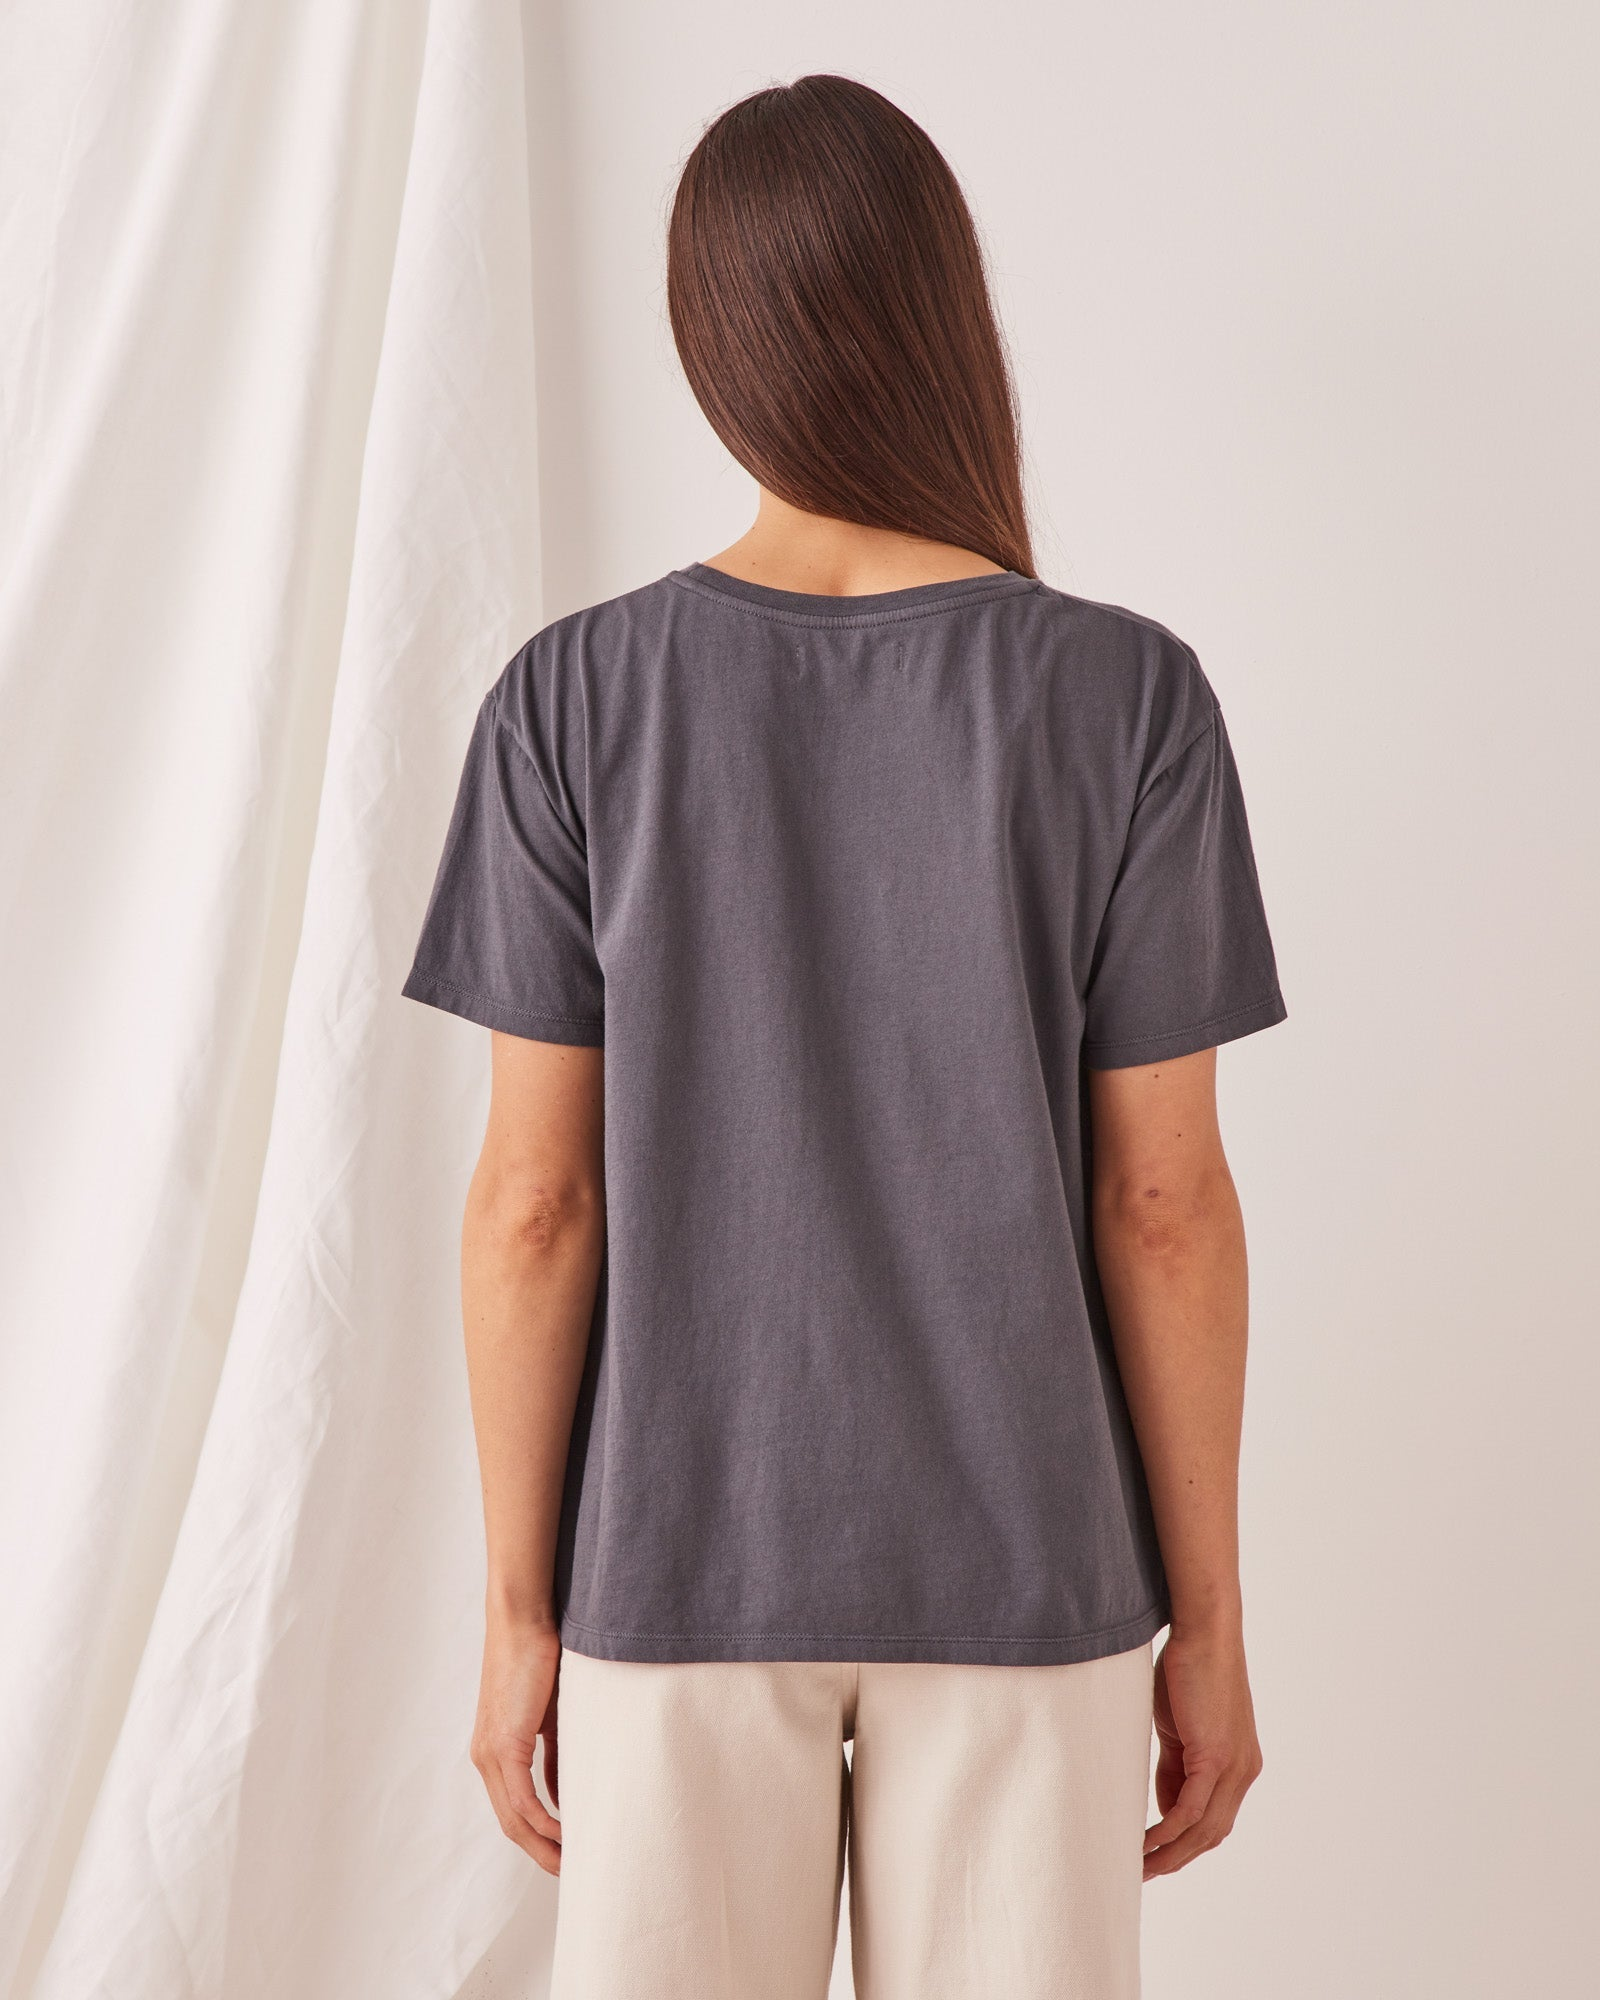 The Crew Tee Charcoal